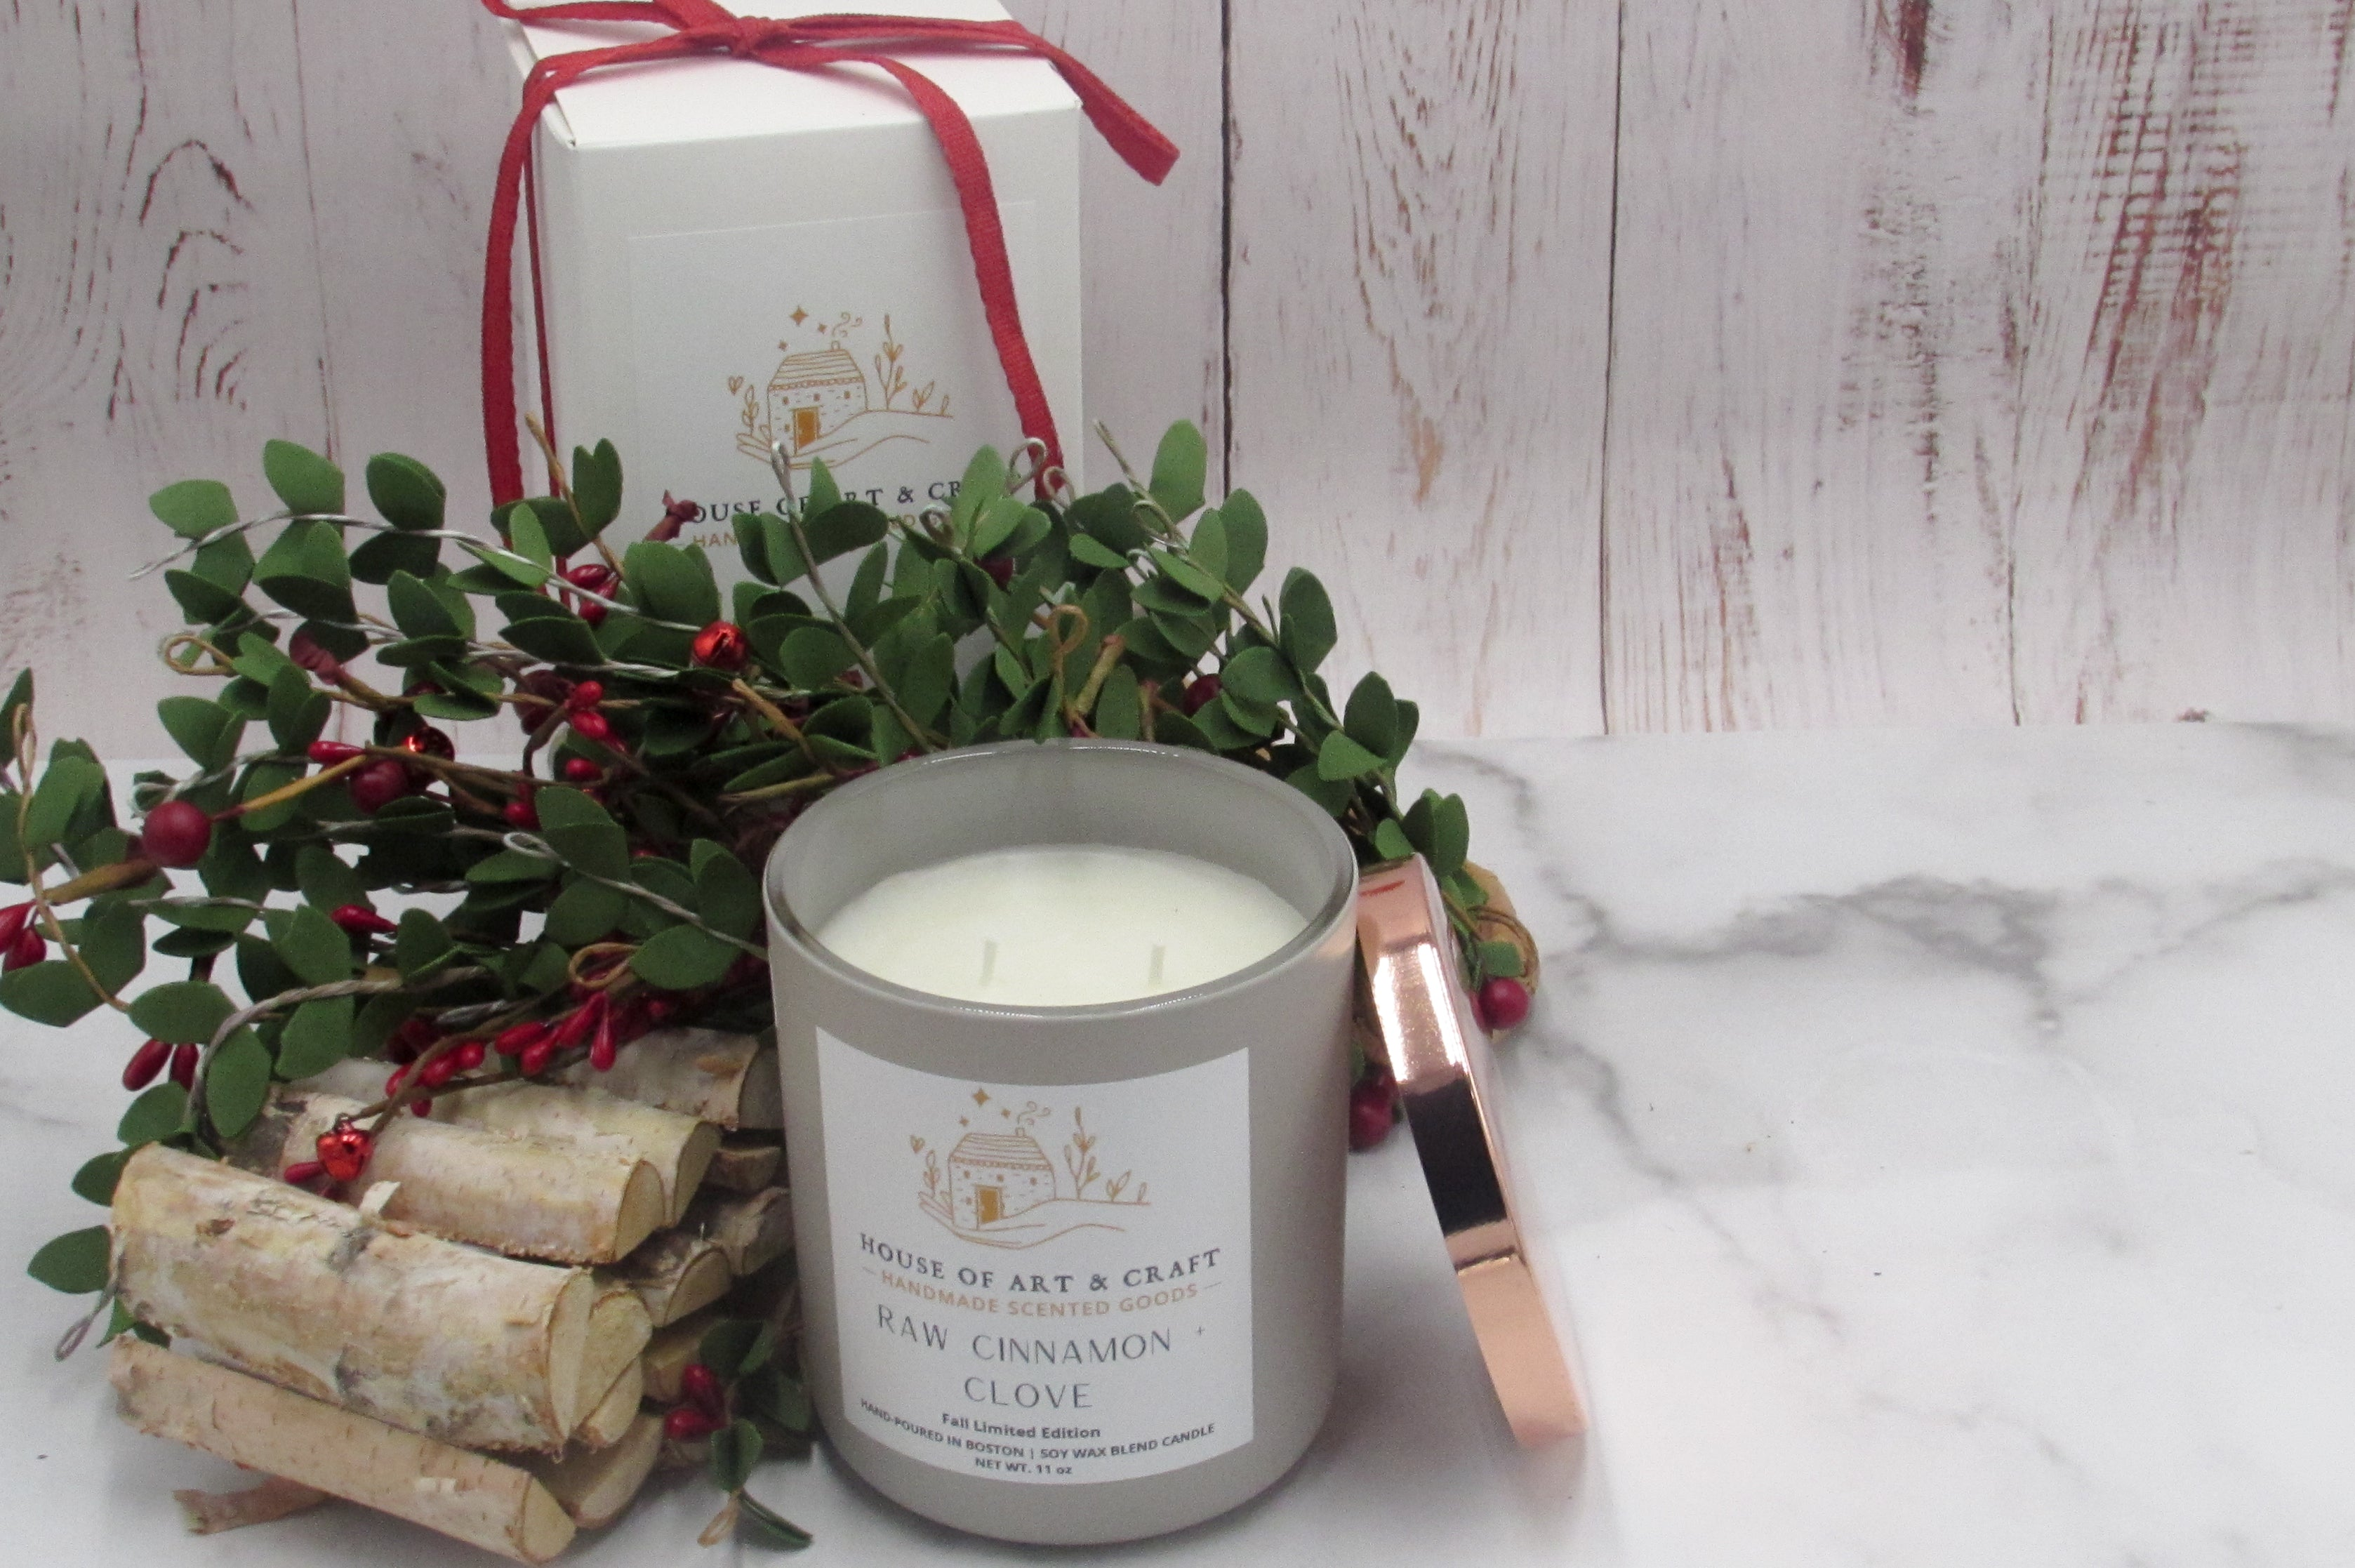 Raw Cinnamon + Clove 12oz Candle | Holiday Limited Edition